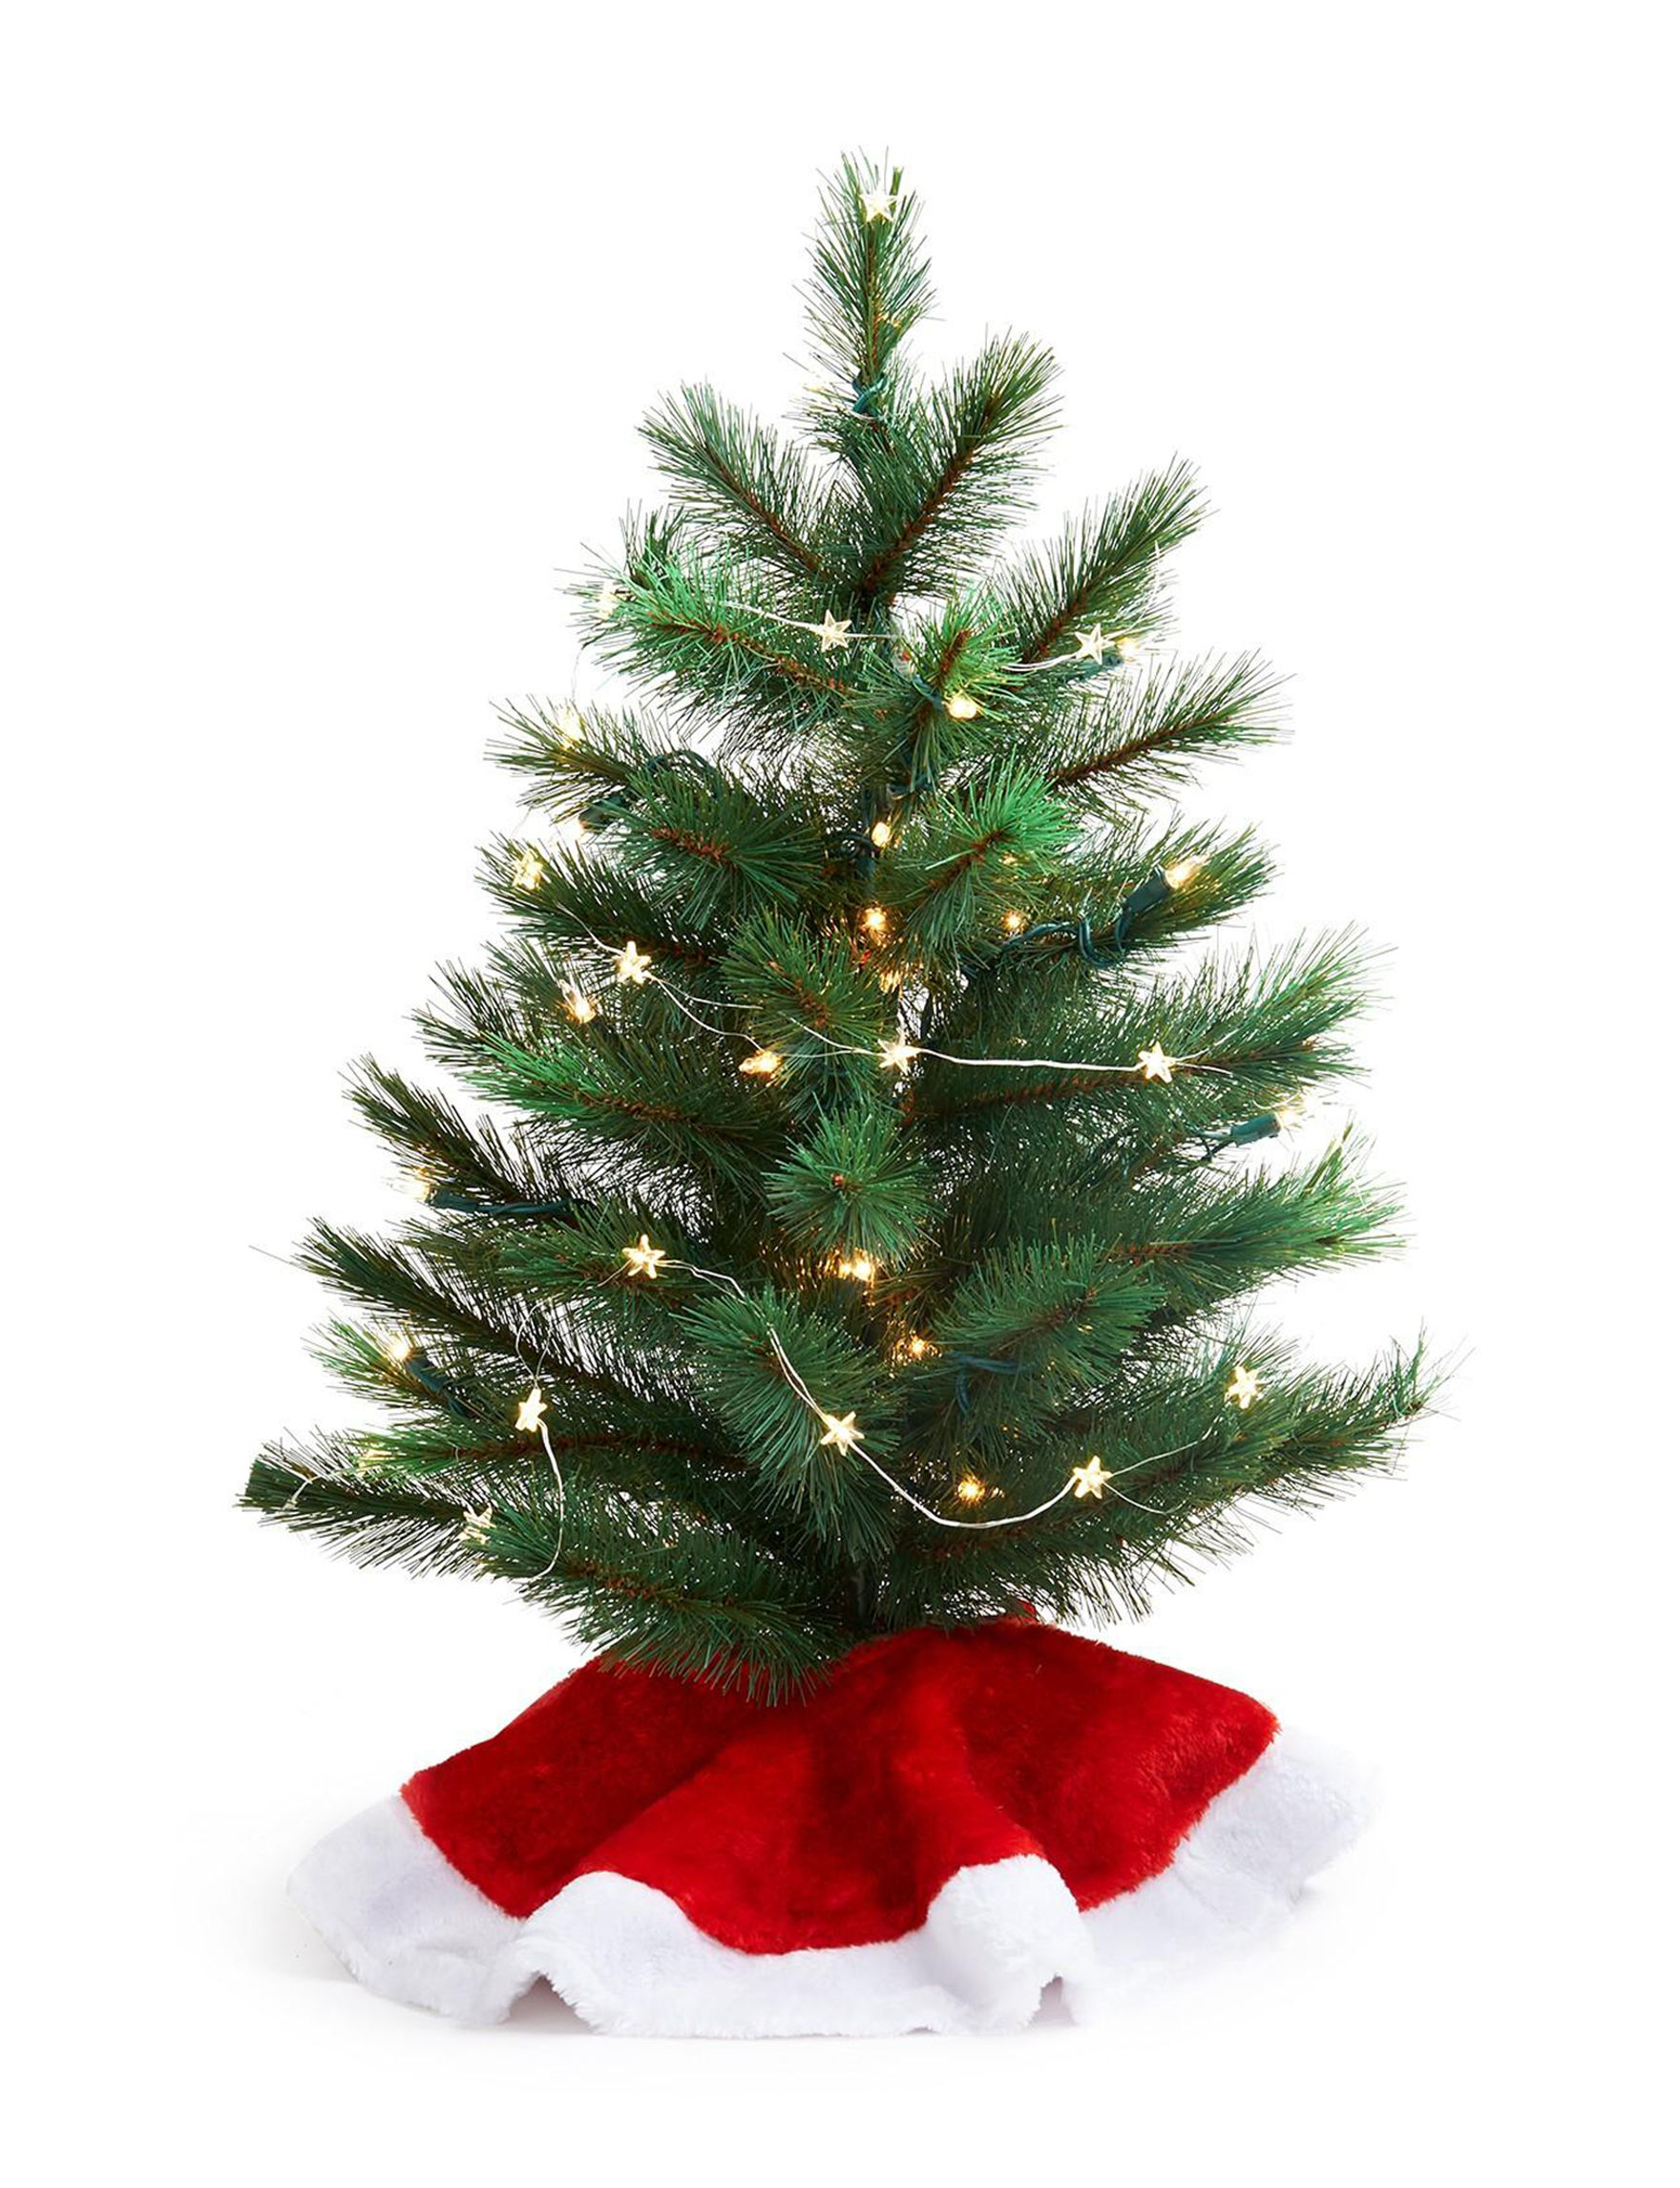 BuySeasons Green / Red Christmas Trees Decorative Objects Holiday Decor